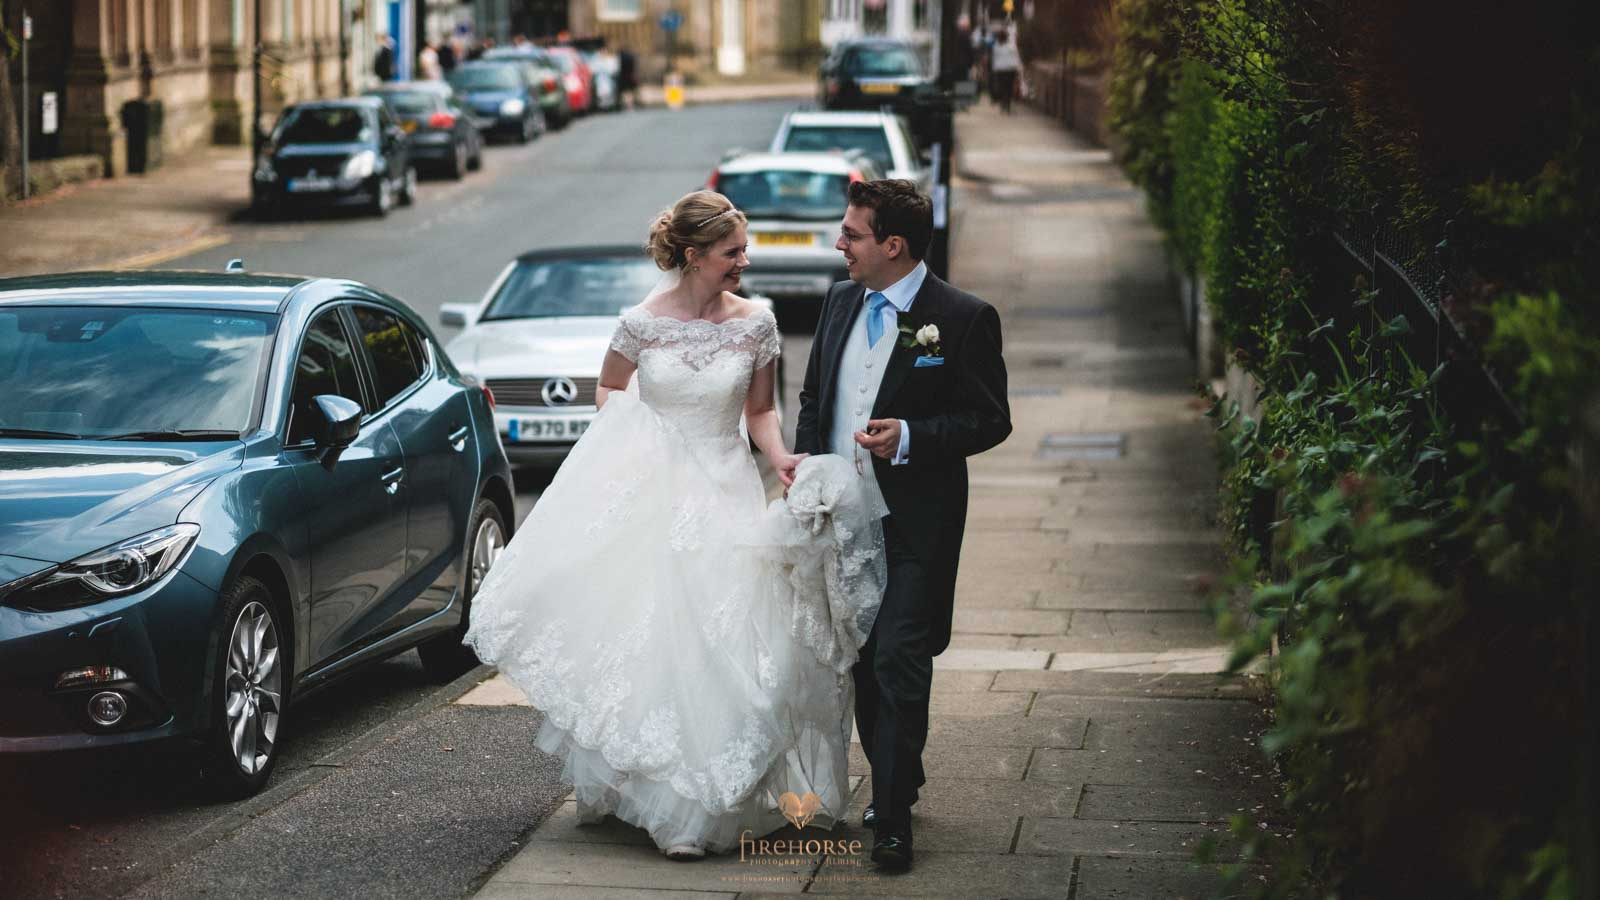 Harrogate-Wedding-160